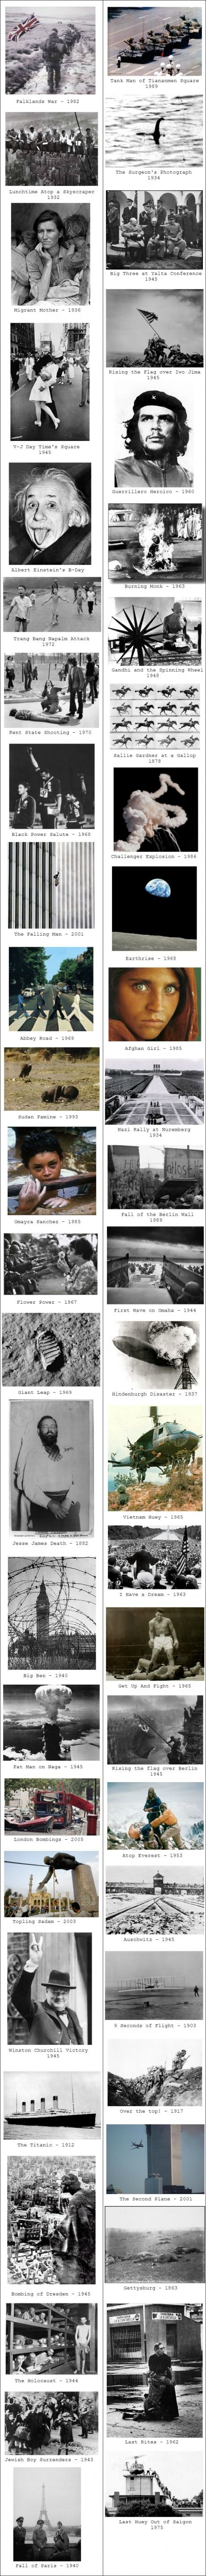 Iconic Pictures of the World. Made me tear up. There is so much power in a single image.